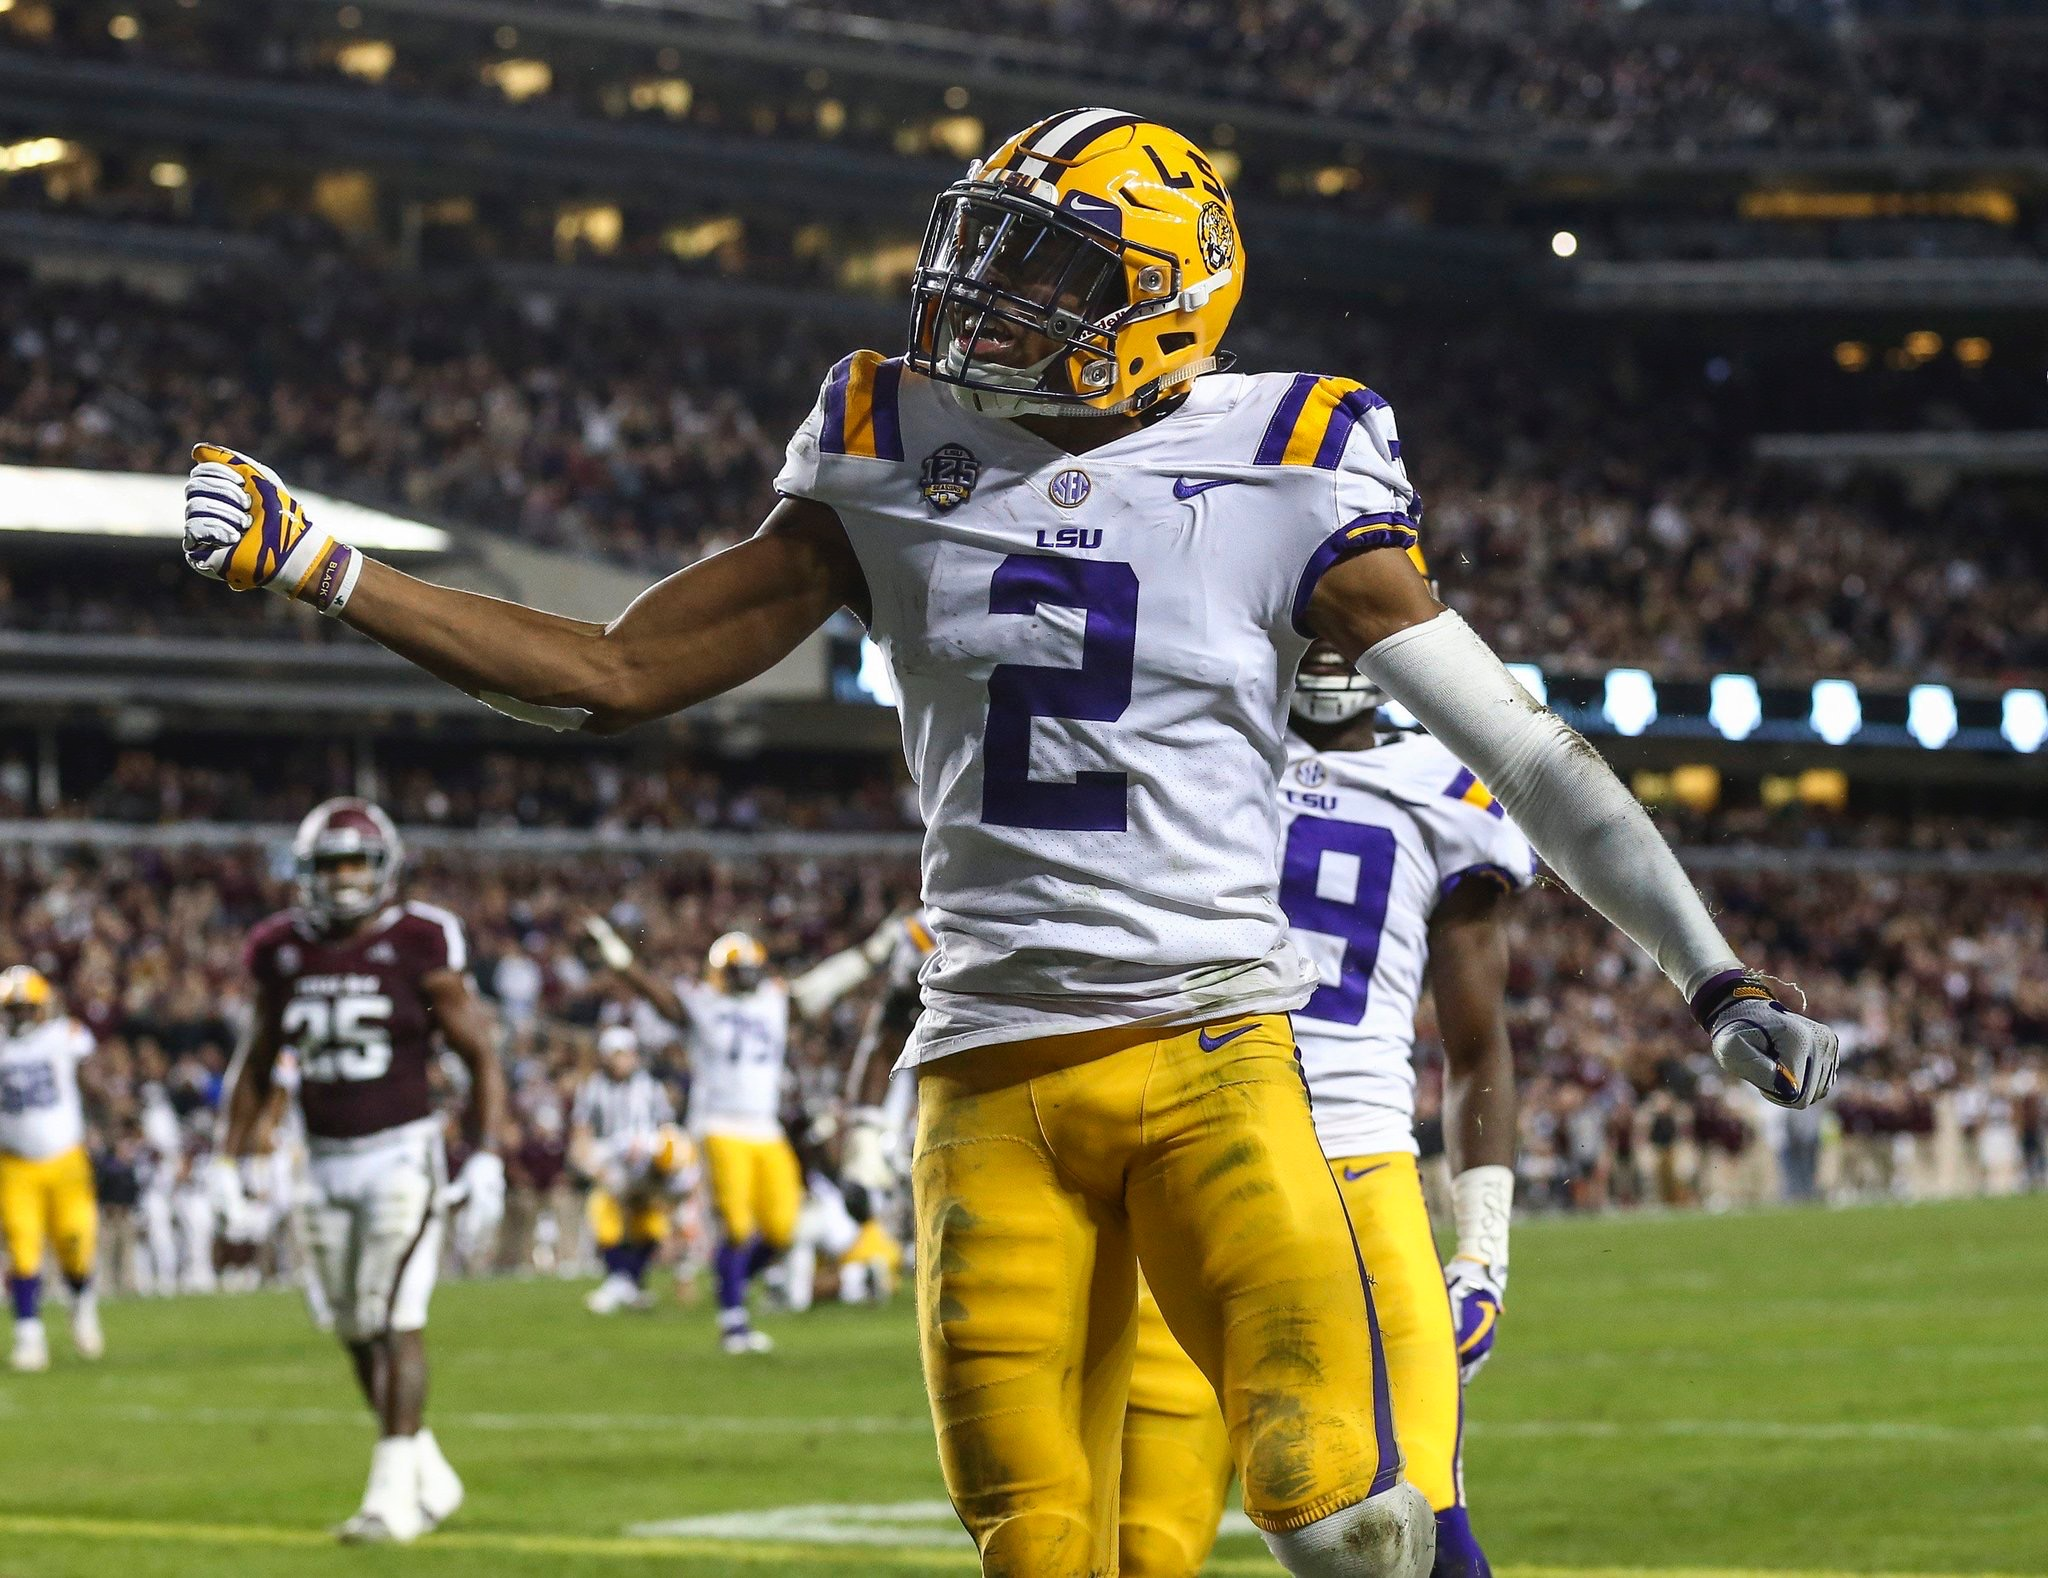 Football headed to Fiesta Bowl to face No. 8 UCF